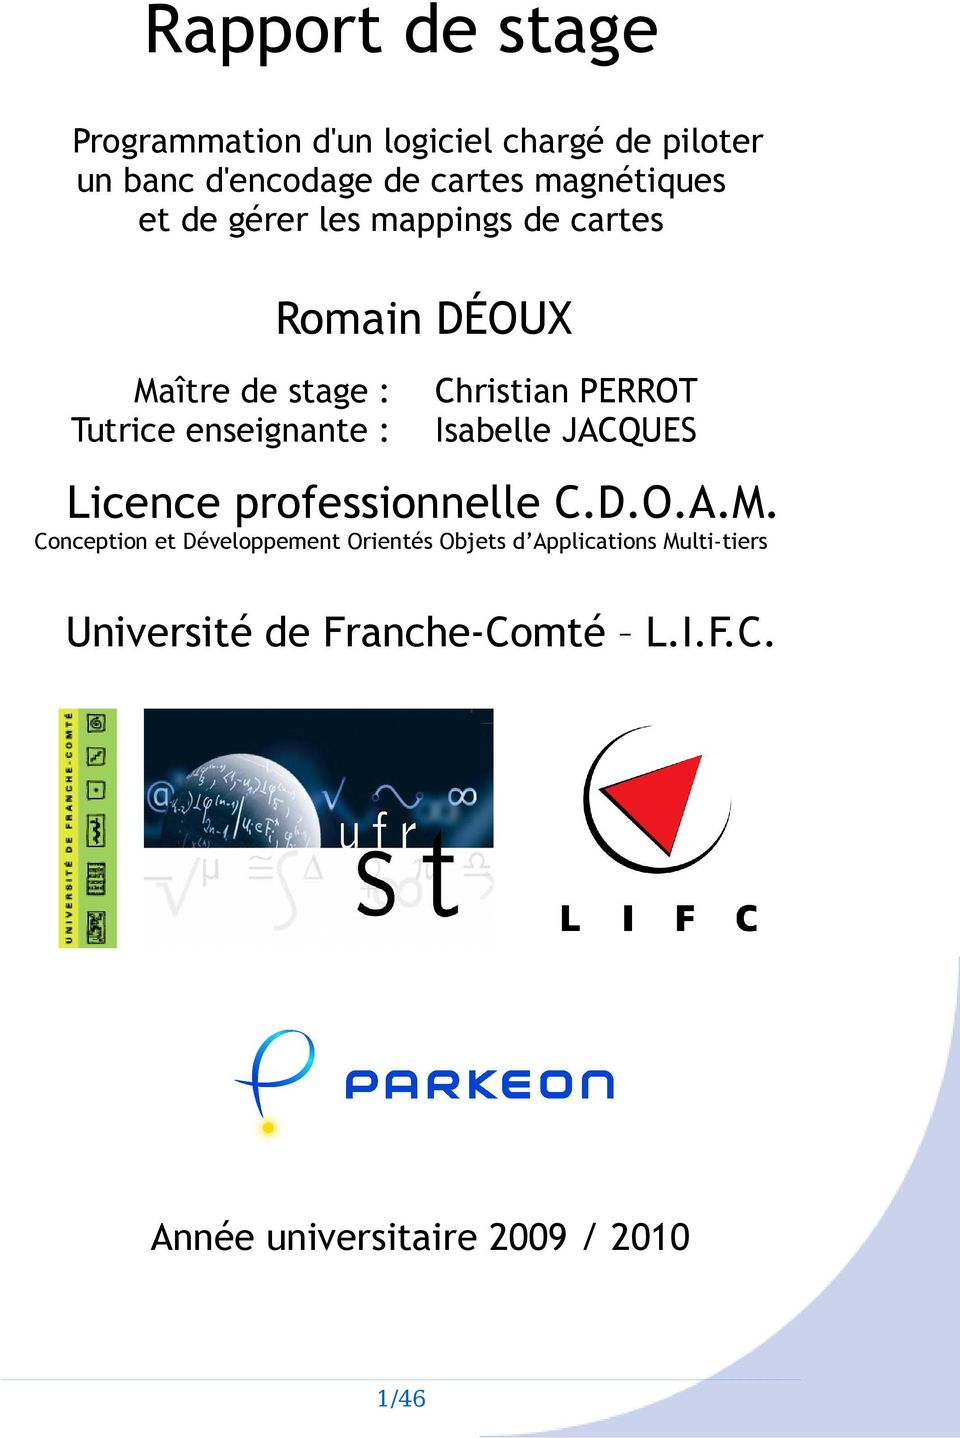 Christian PERROT Isabelle JACQUES Licence professionnelle C.D.O.A.M.